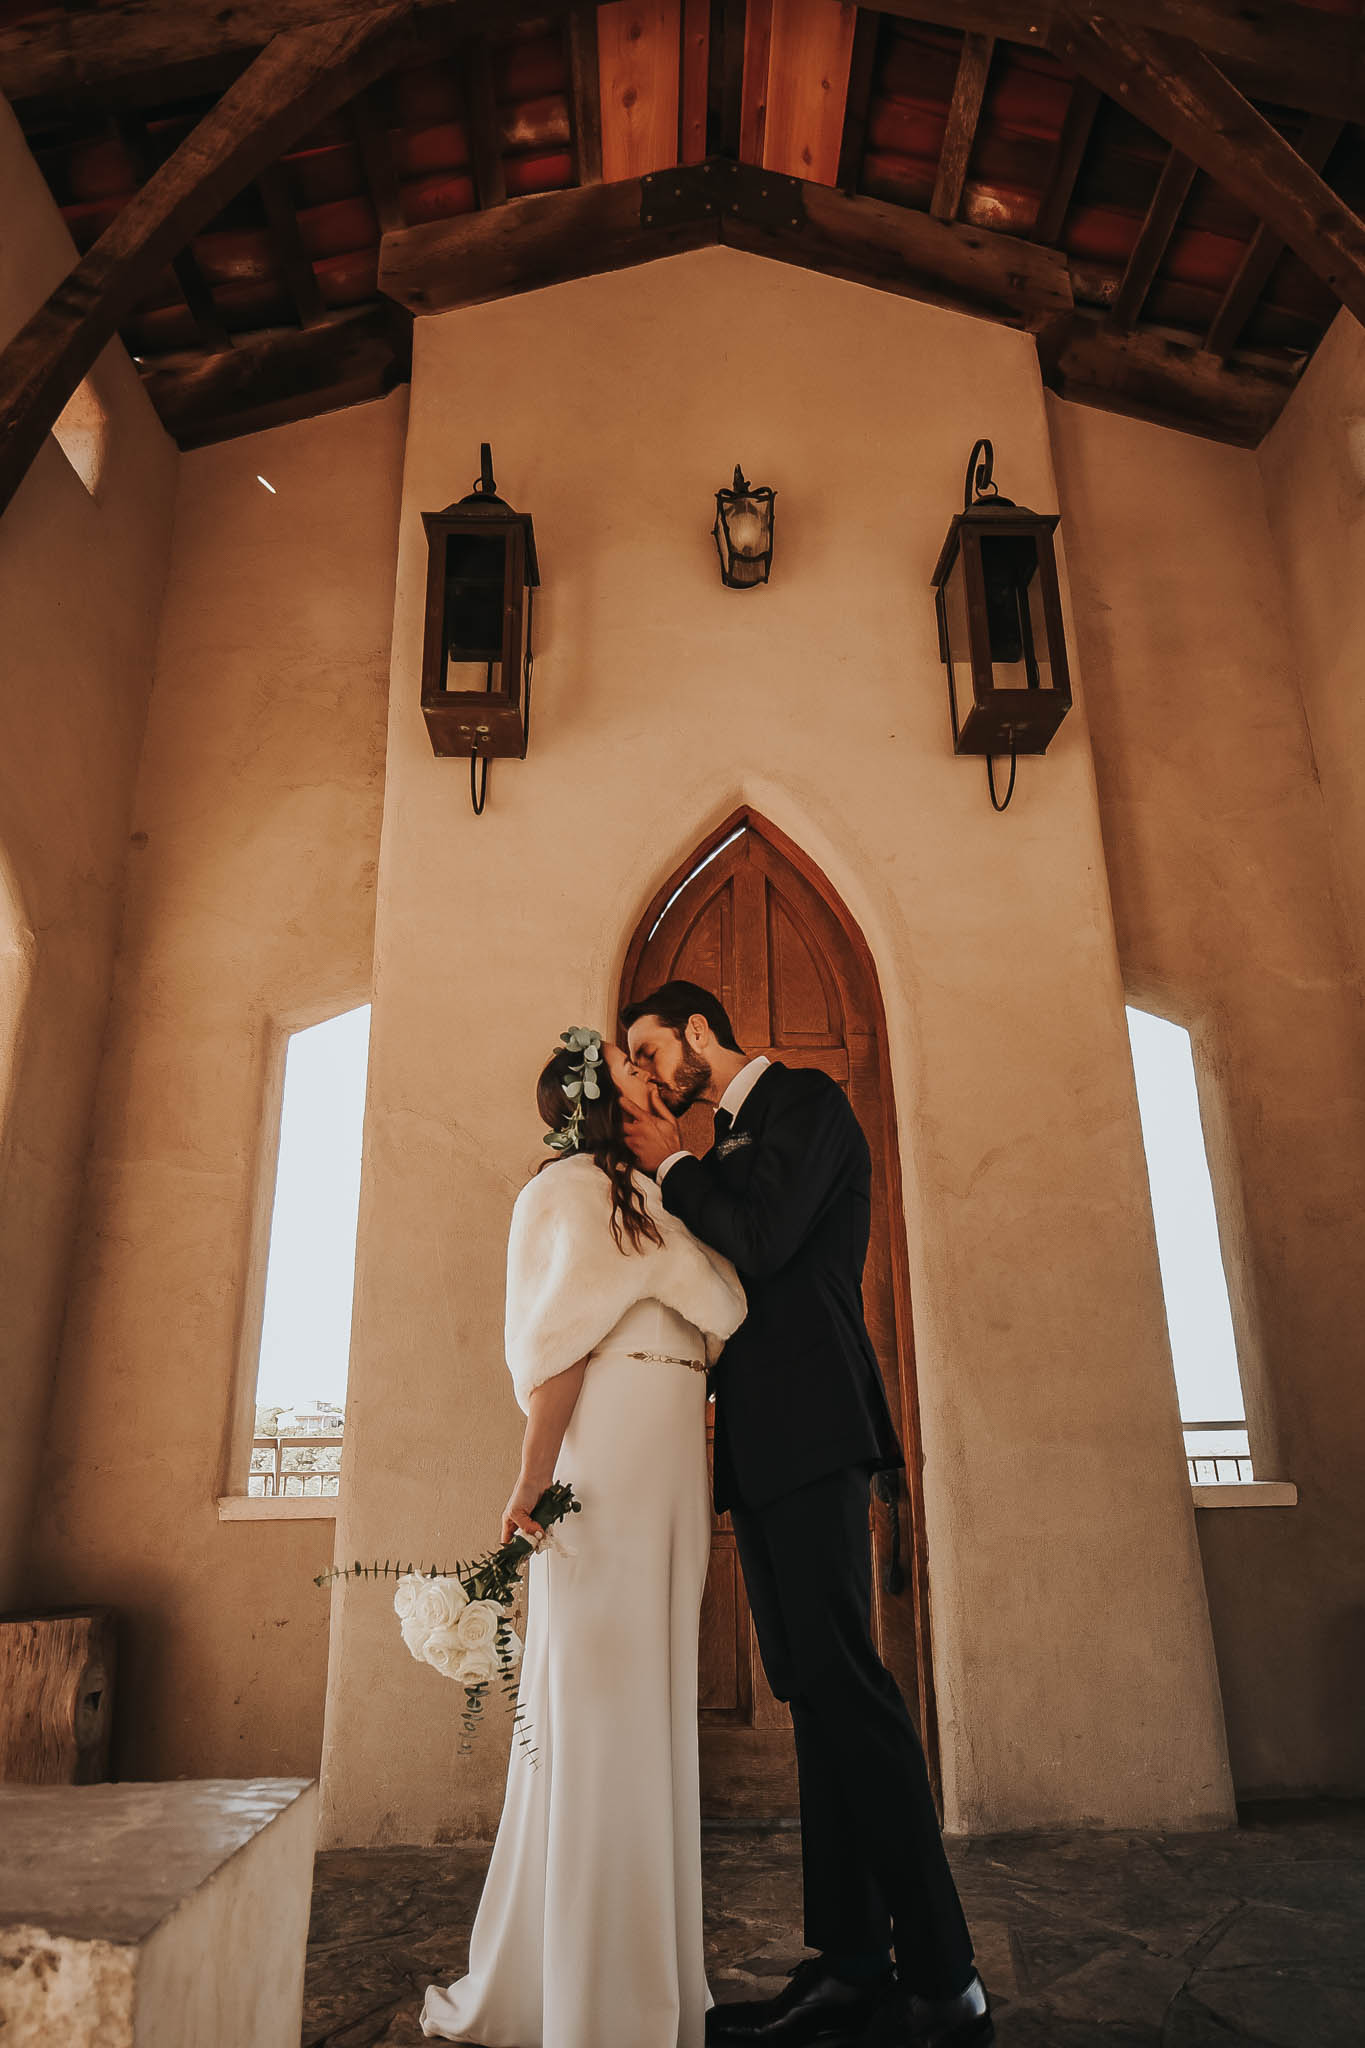 Intimate ceremony at Chapel Dulcinea in Austin, Texas